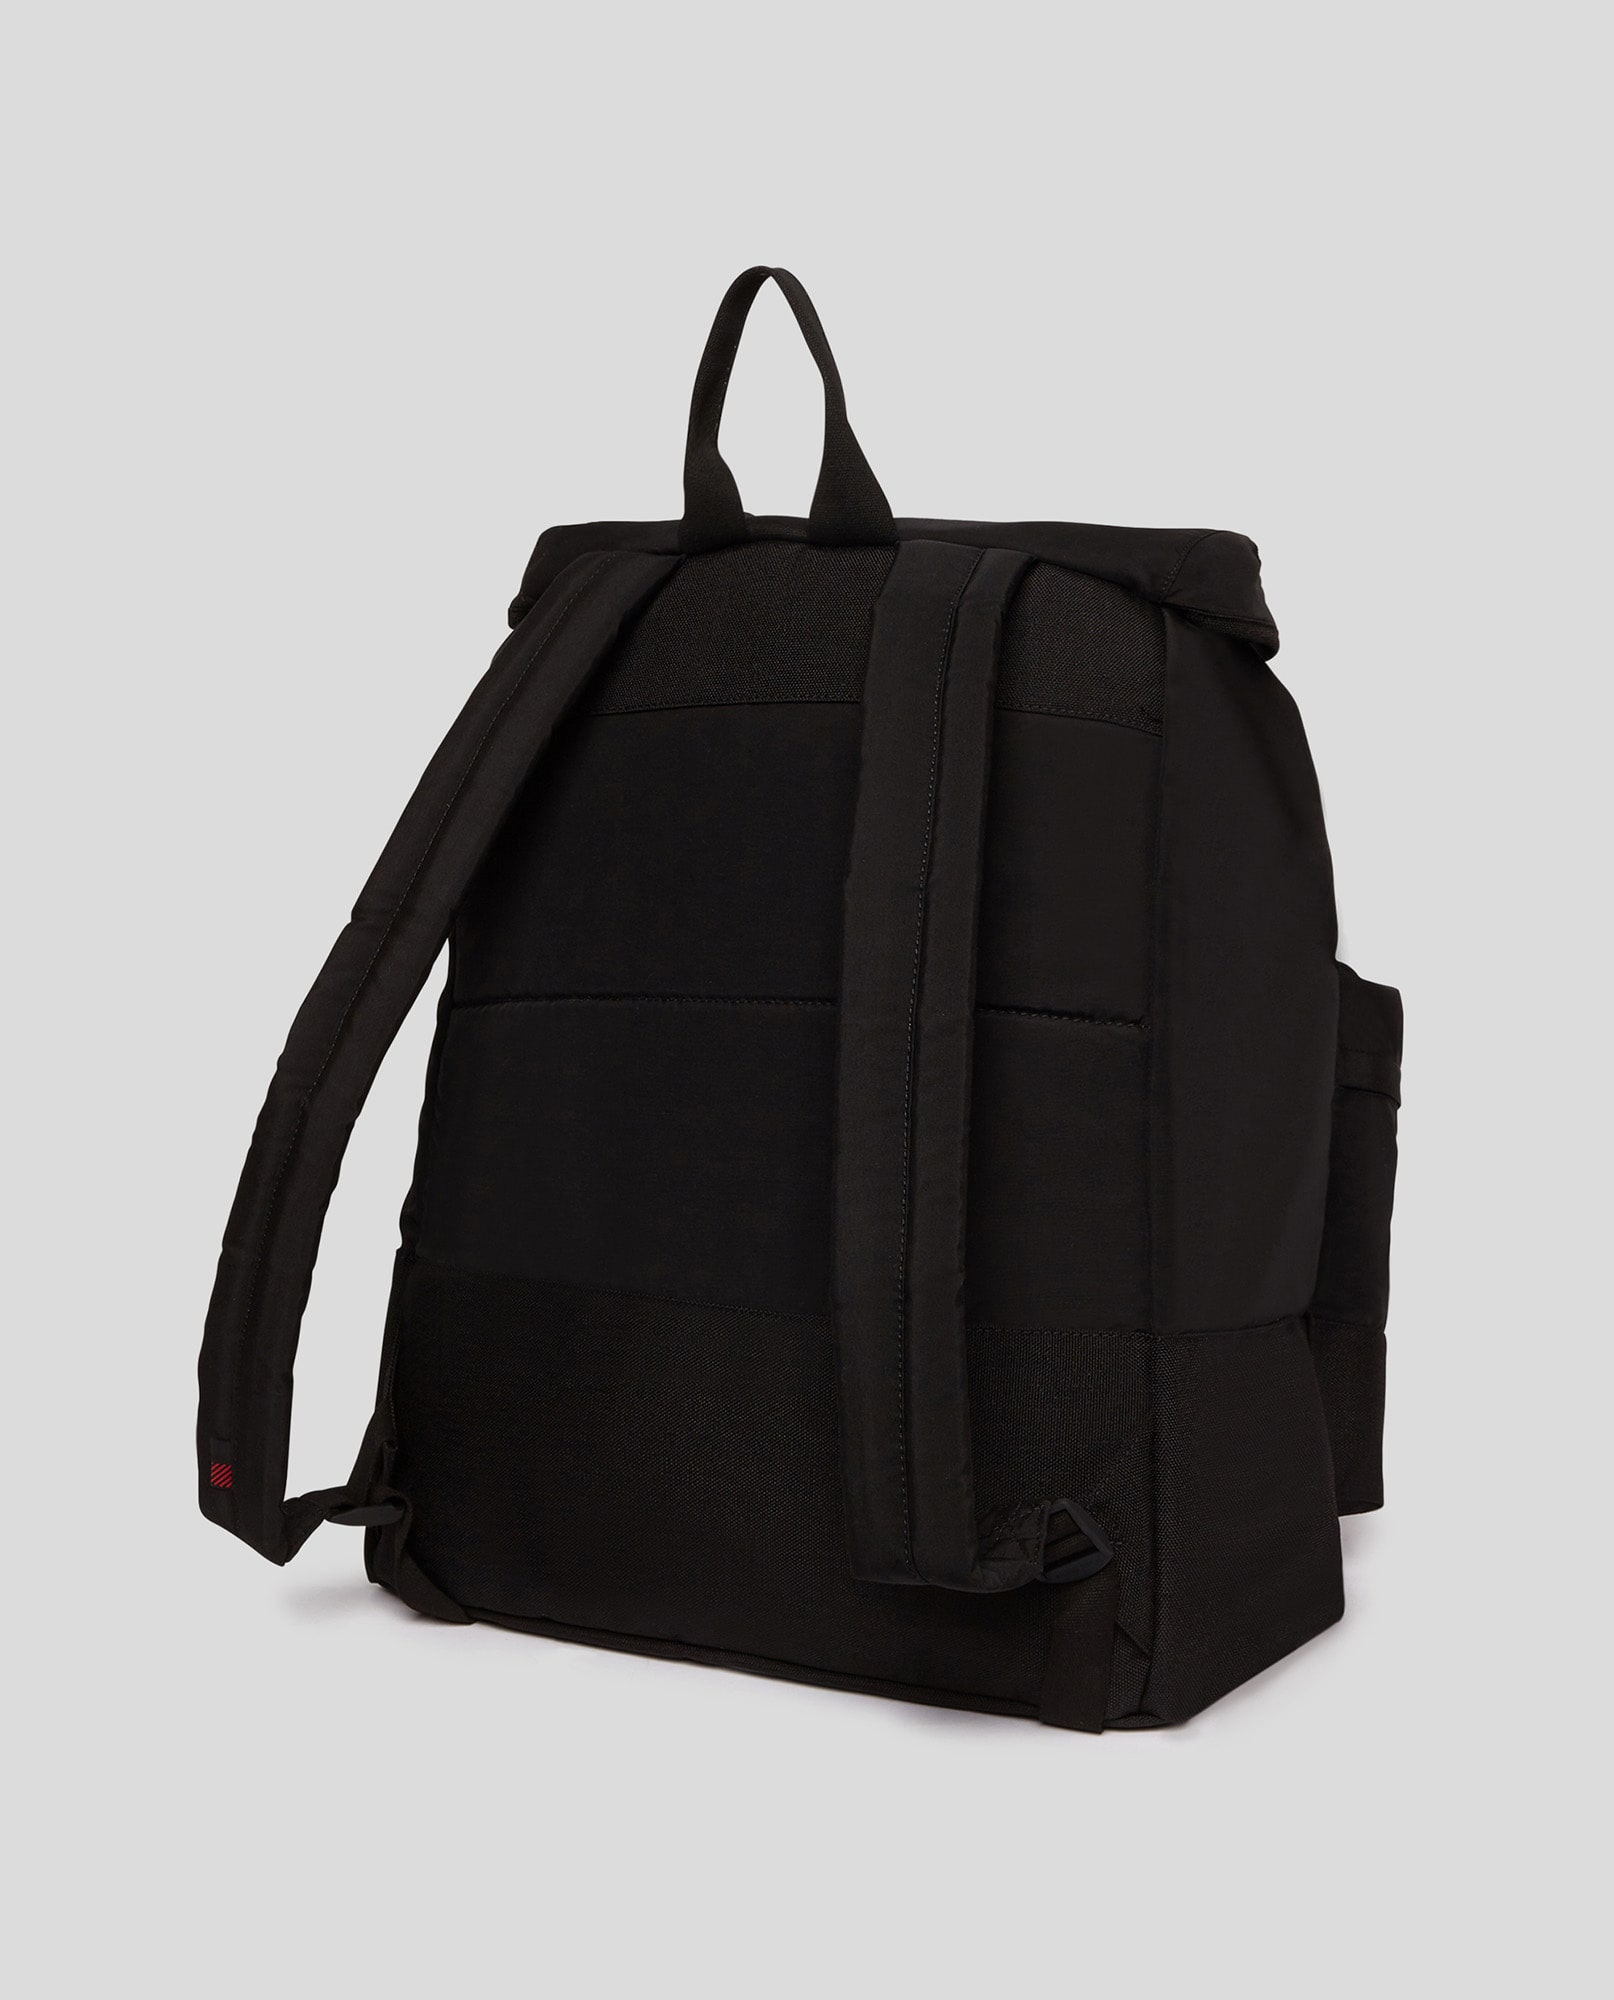 3L LOGO BACKPACK